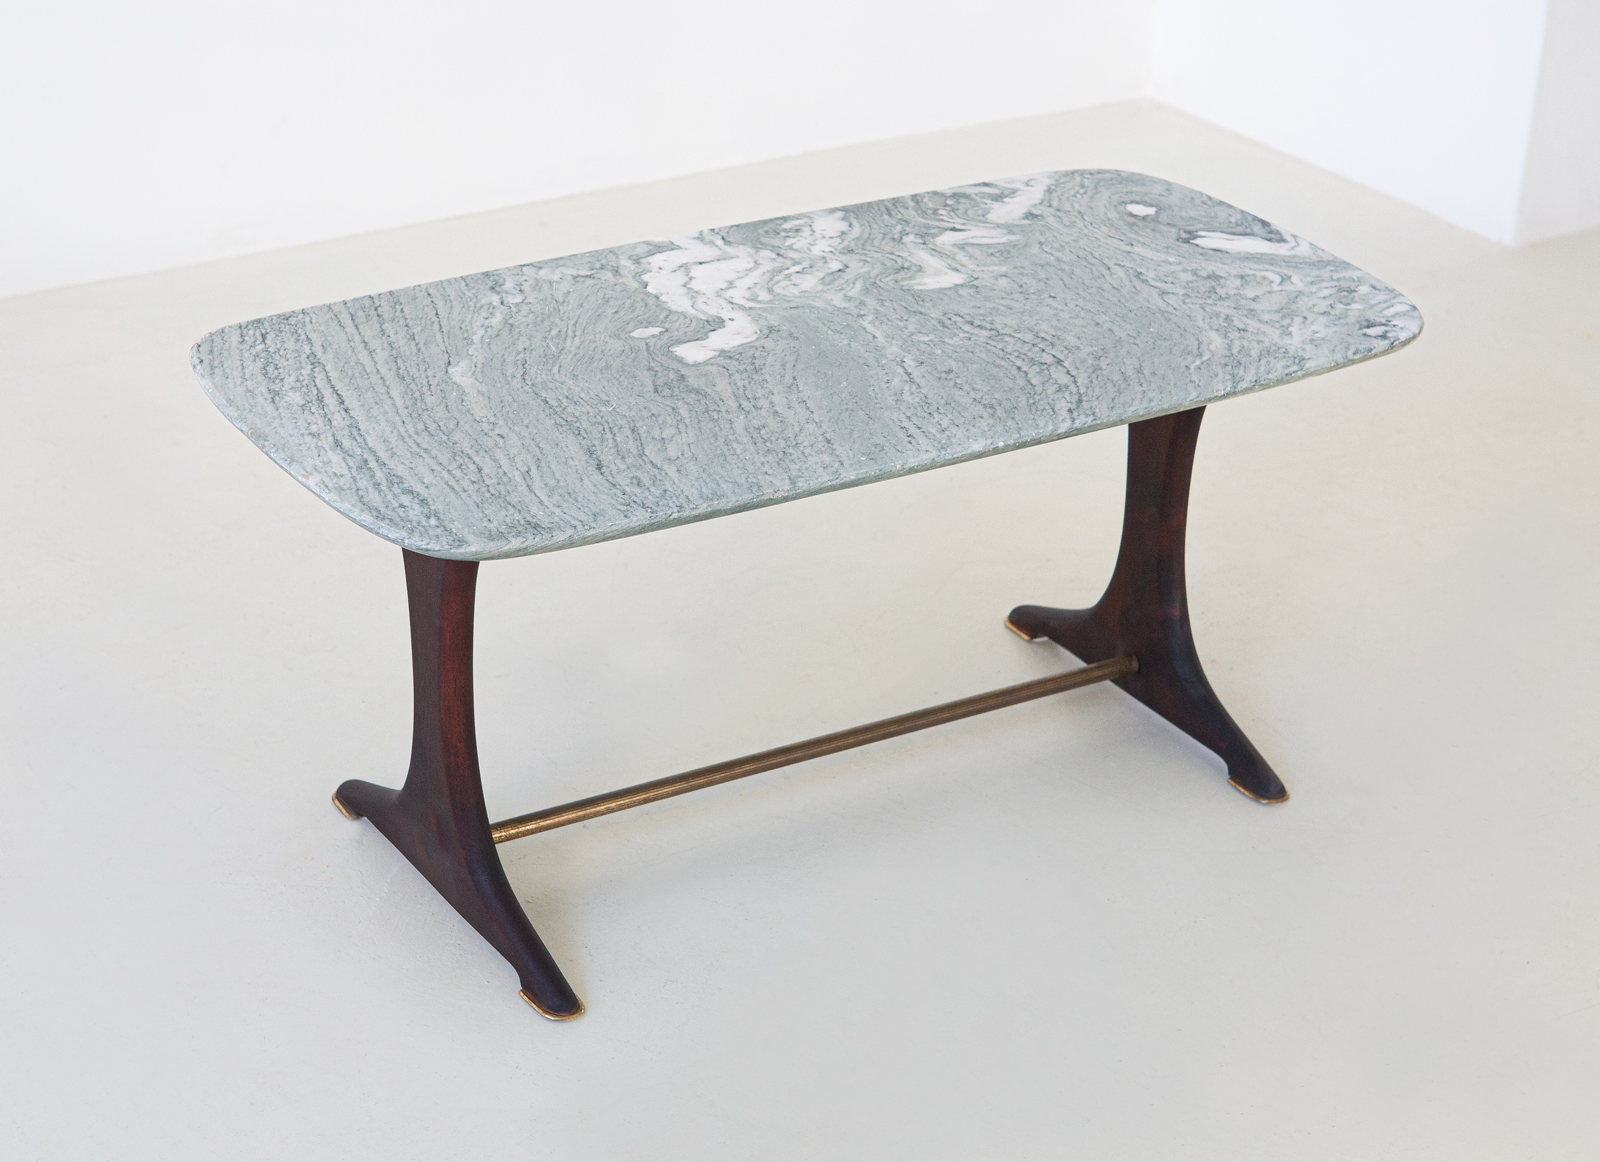 1950s-italian-low-table-with-marble-top-5-t88